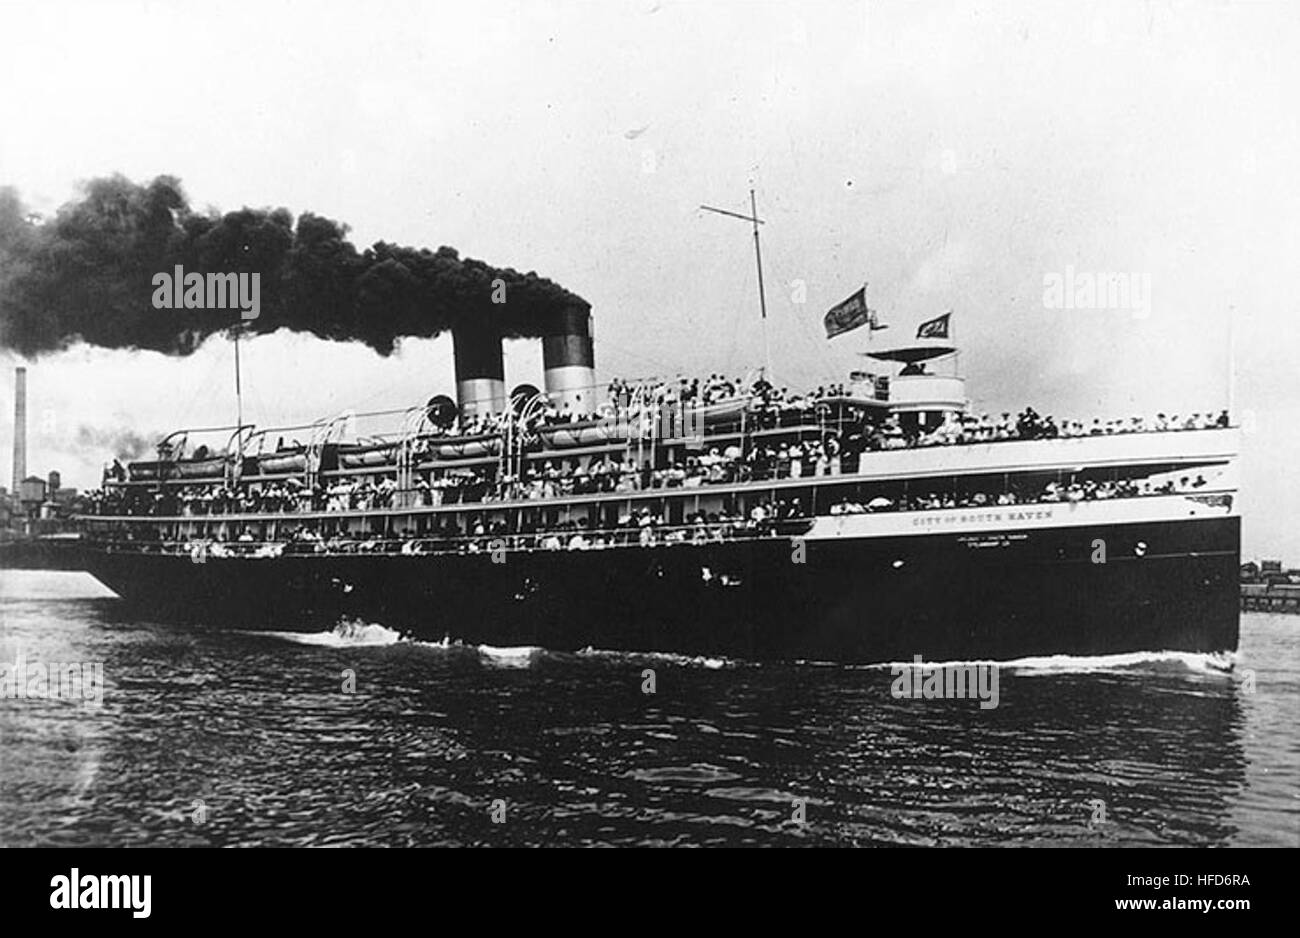 SS City of South Haven (American Passenger Steamship, 1903) - Stock Image